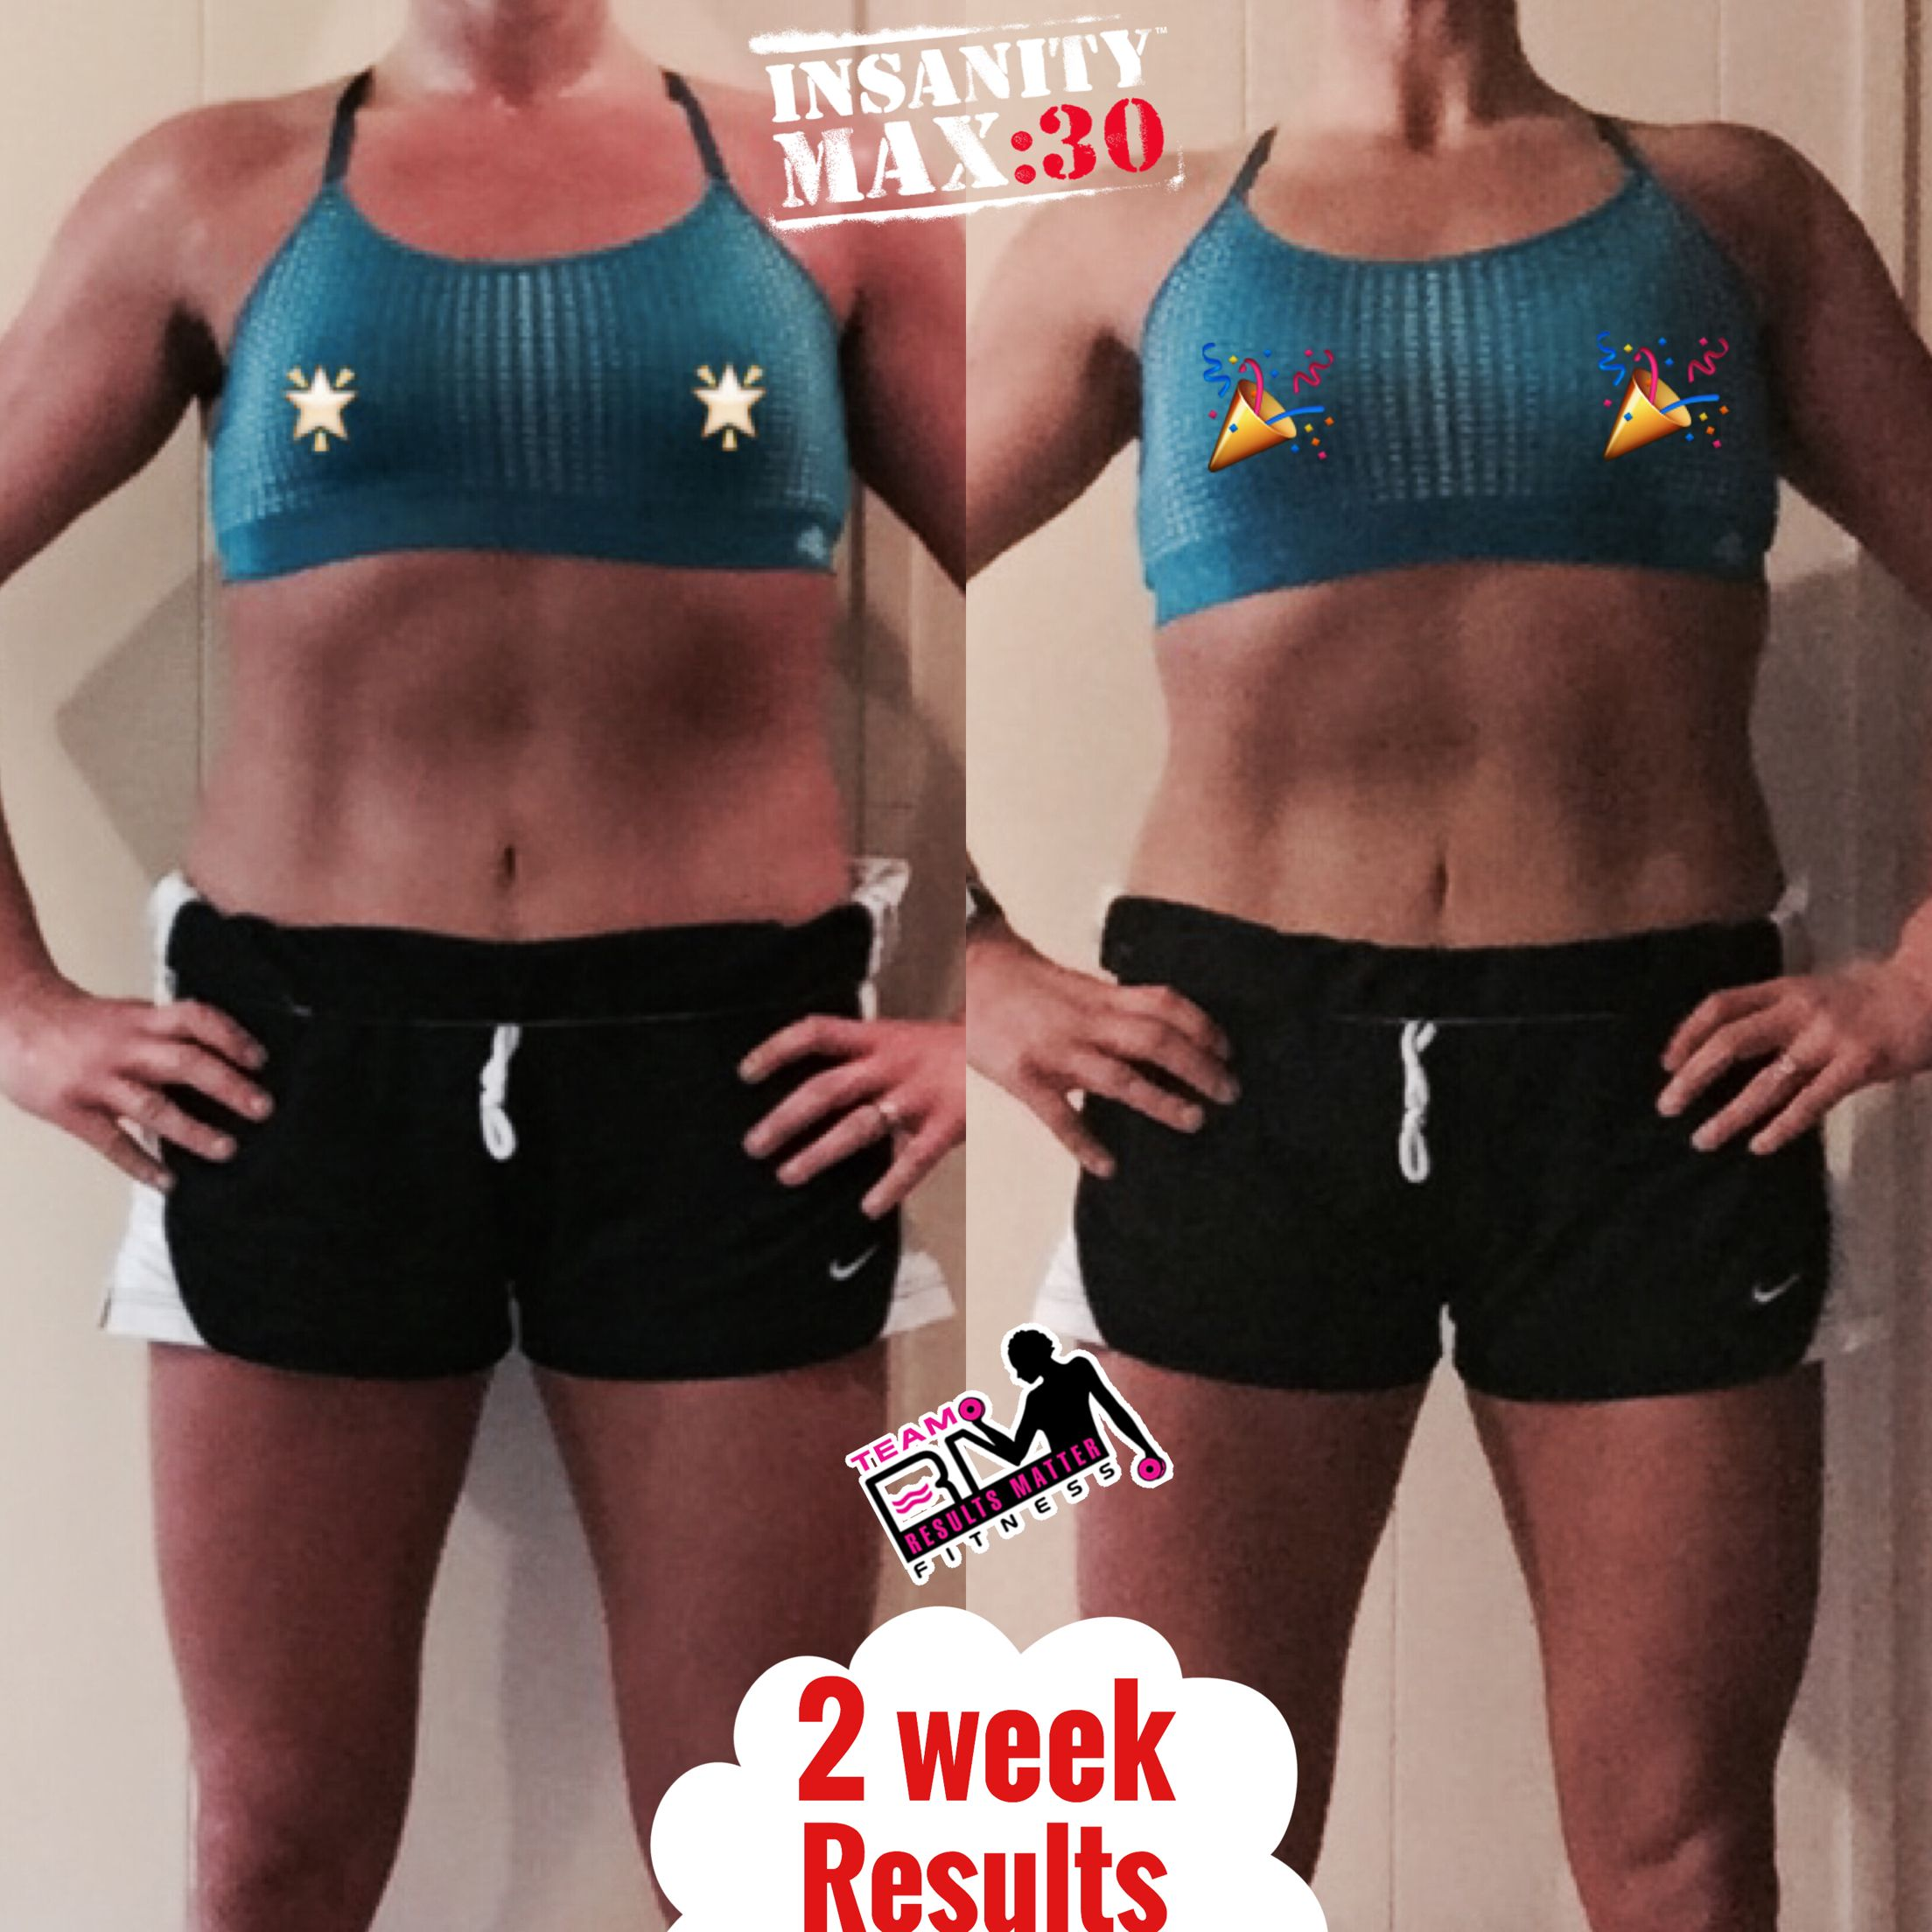 2 week insanity Max 30 / PALEO results | Insanity Max 30